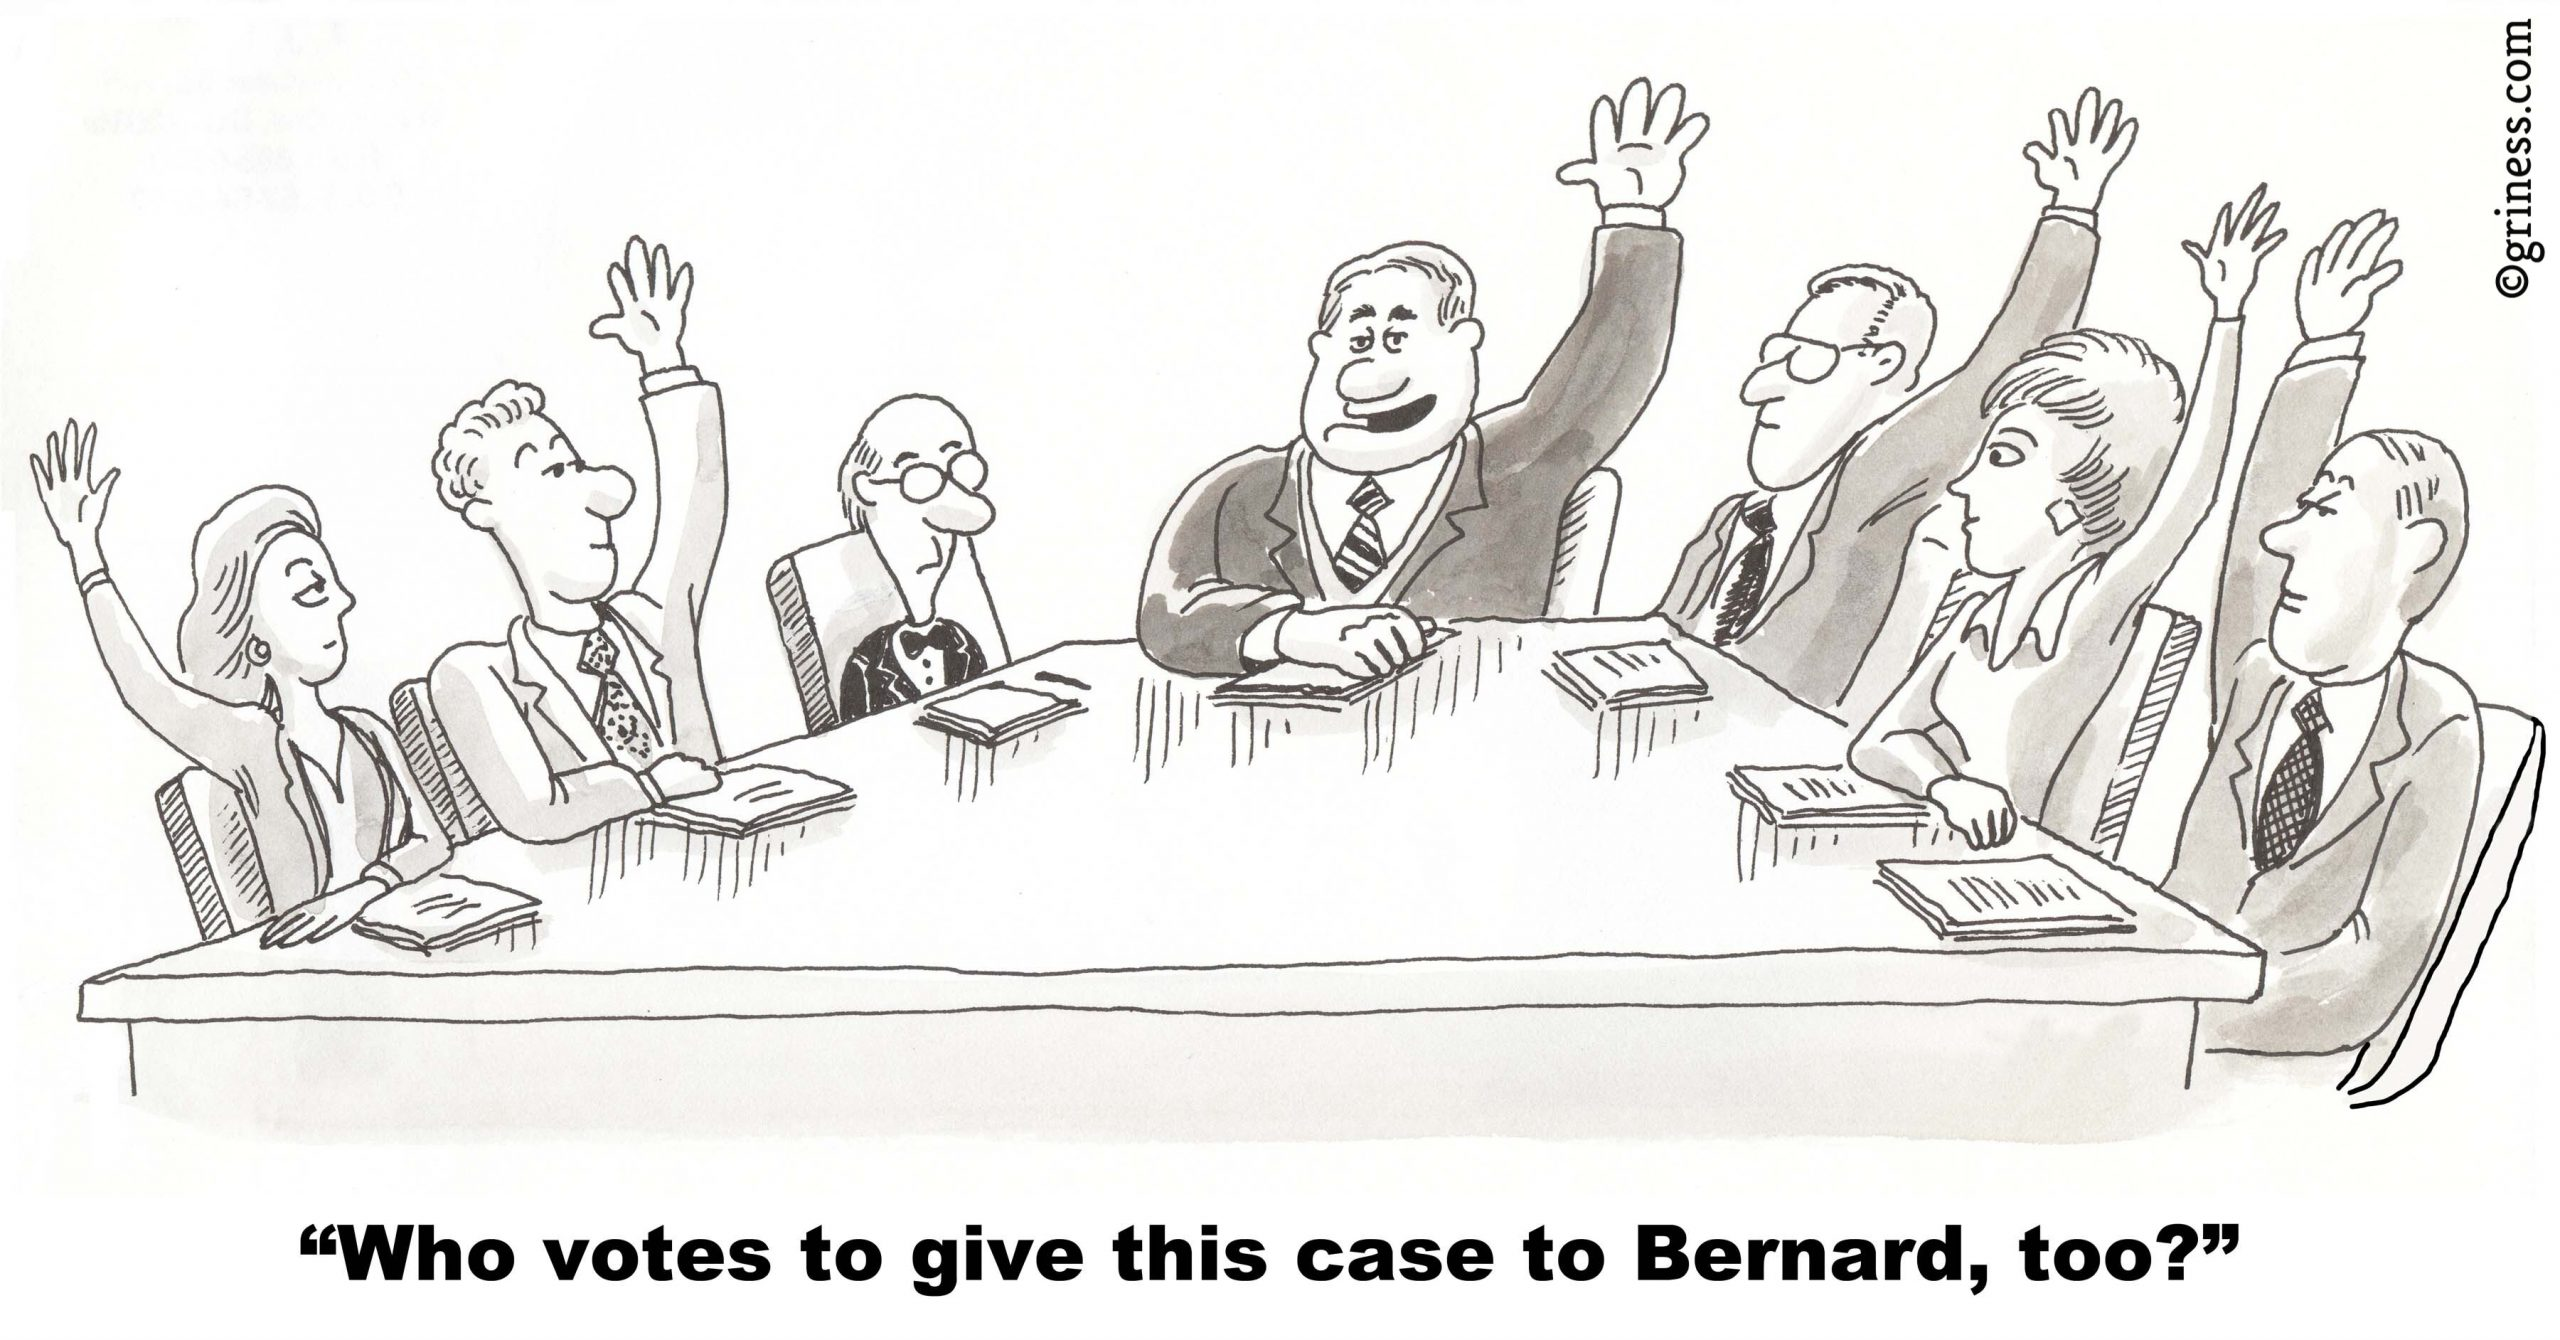 who votes to give this case to bernard too